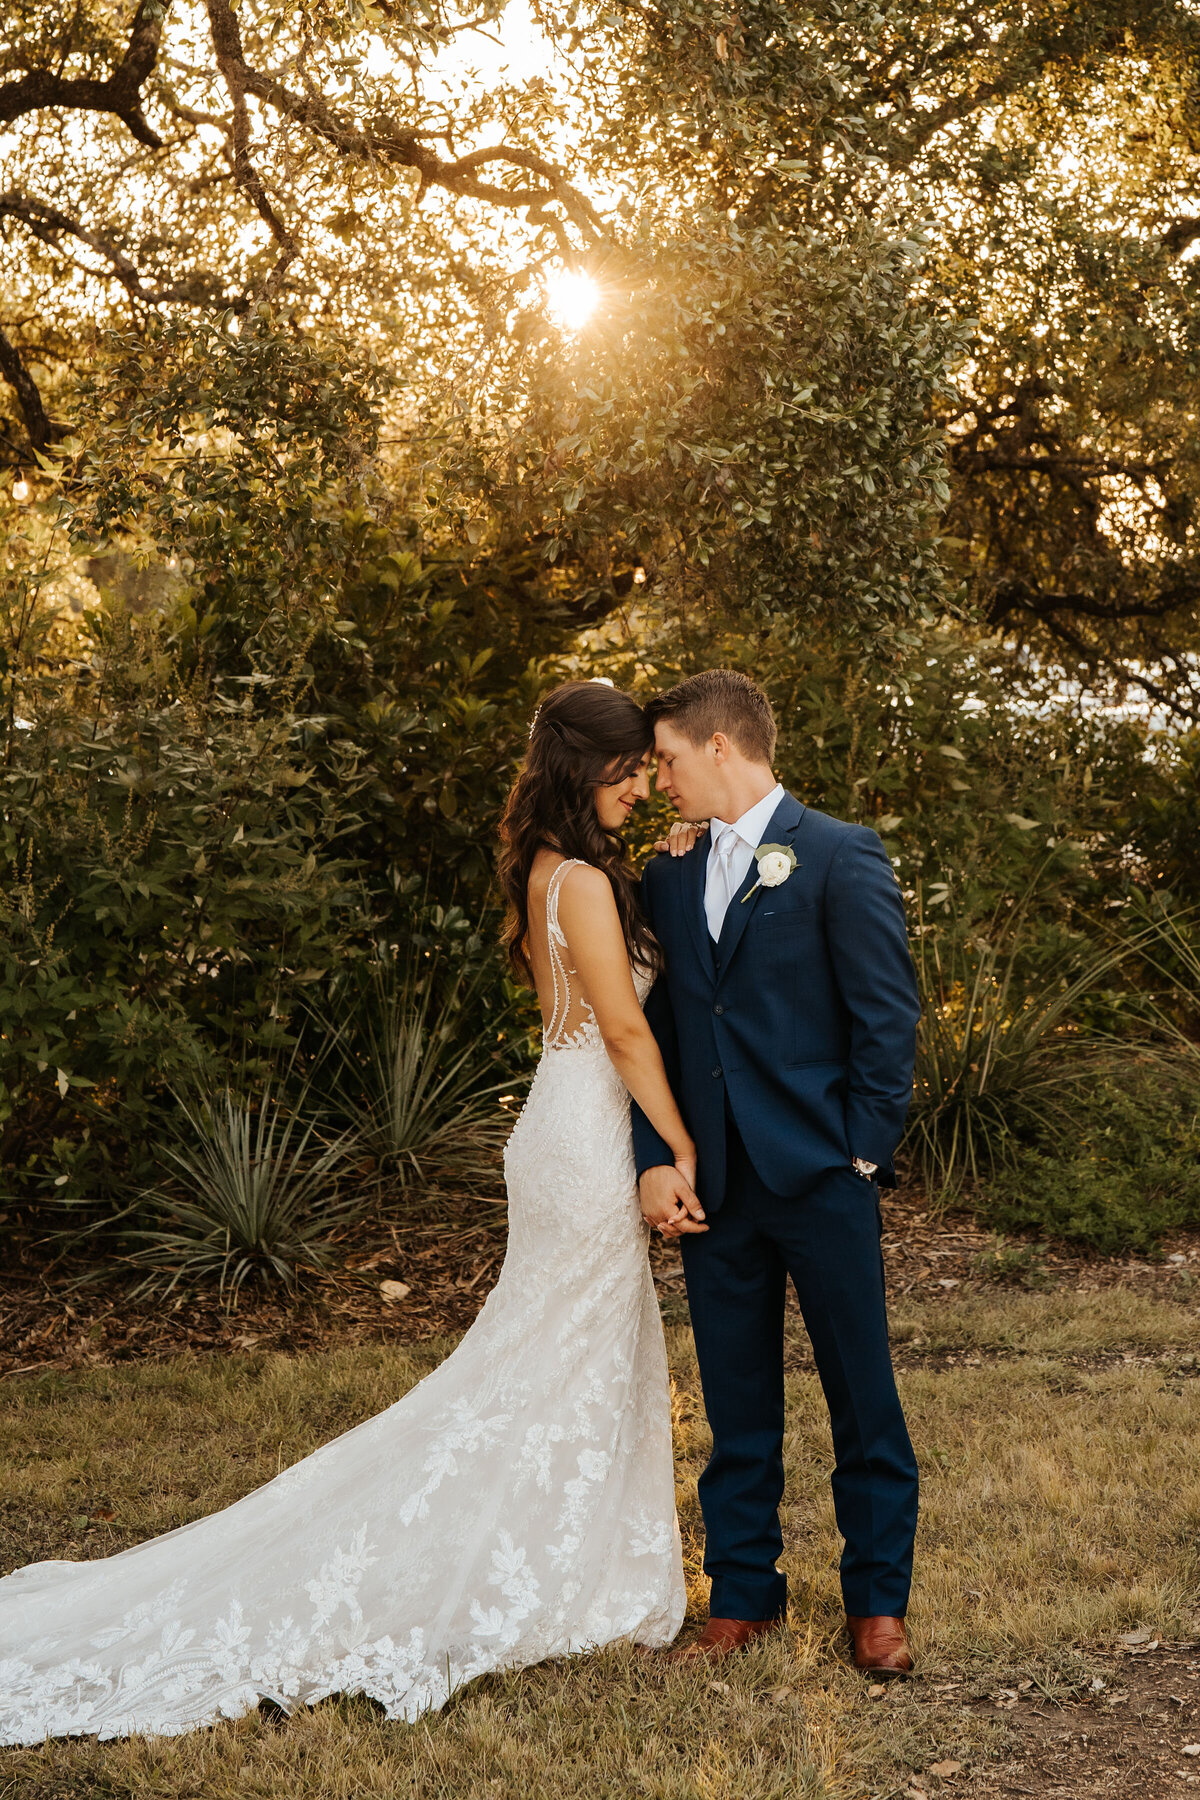 Johnson_Wedding_Bride_and_Groom-120